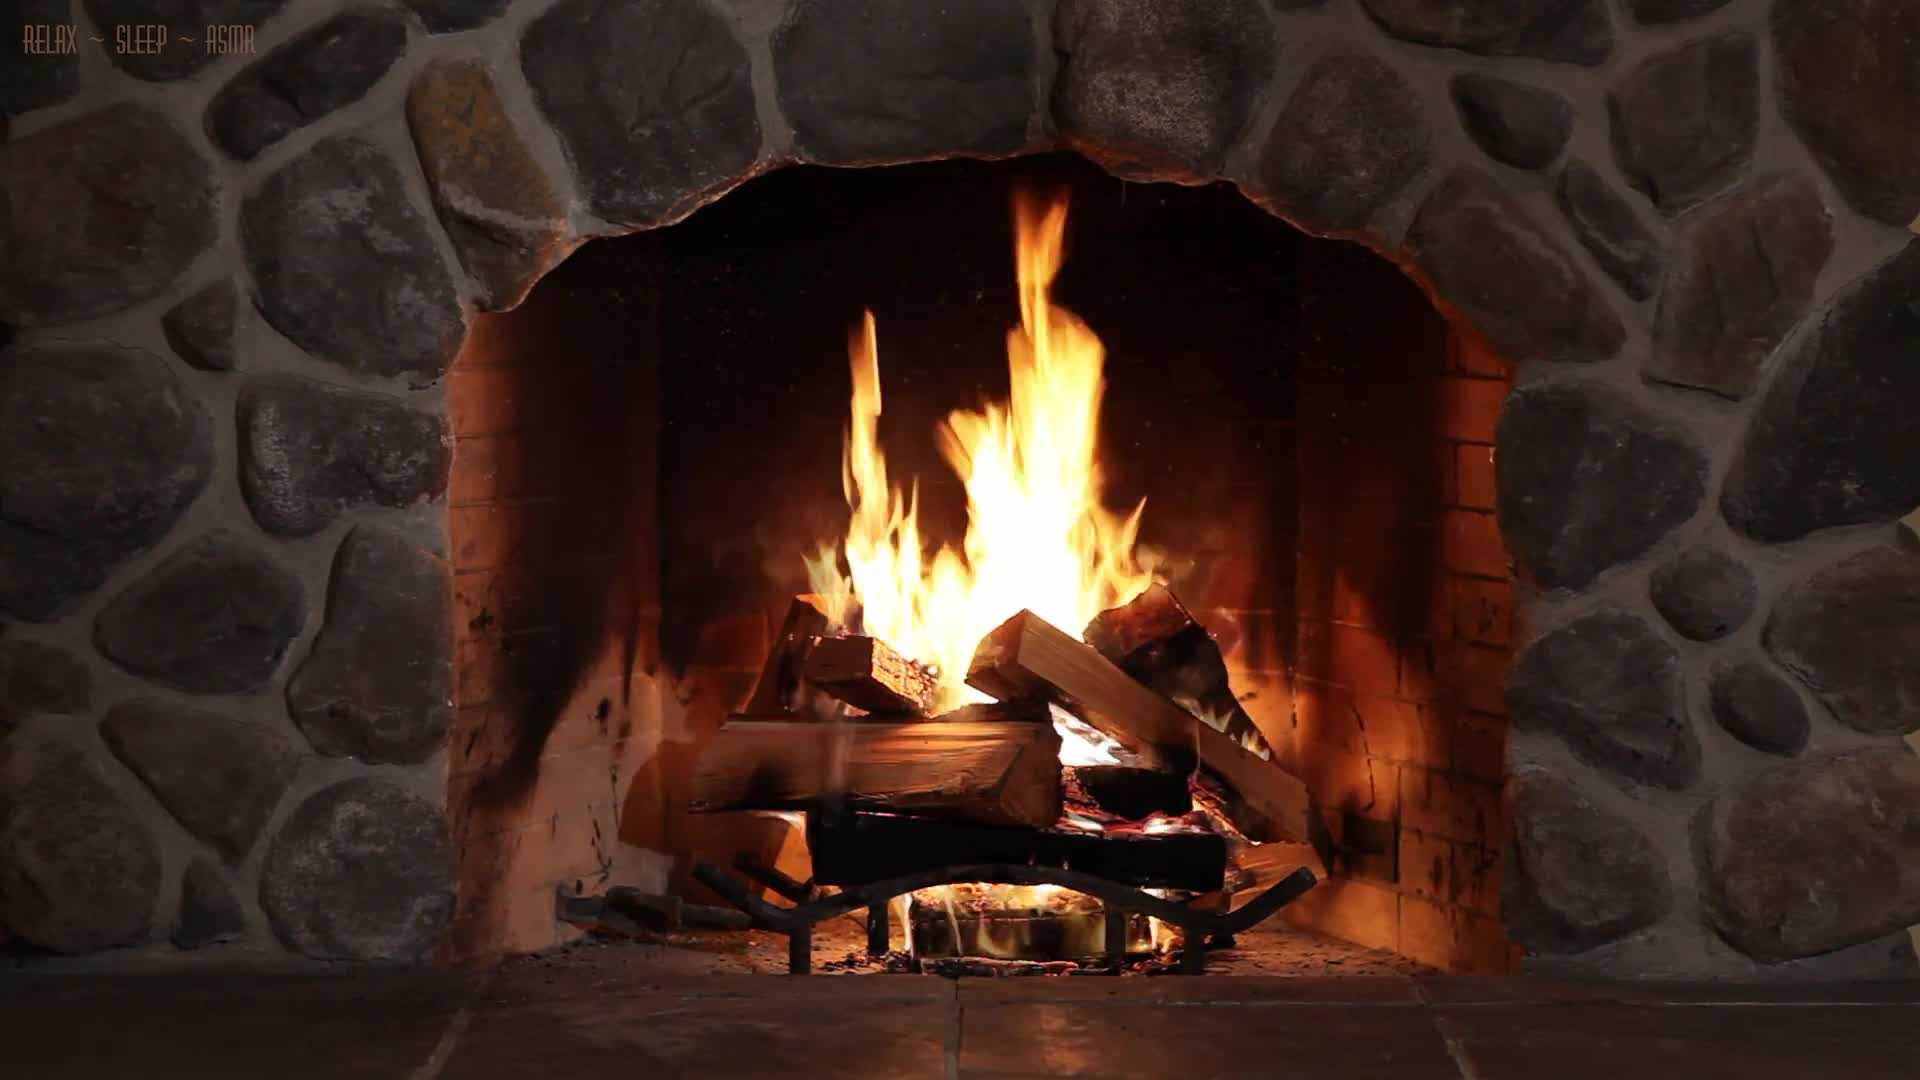 Fireplace Sounds Tv Fireplace With Relaxing Crackling Sounds Of Wood Burning 10 Hours High Definition Audio